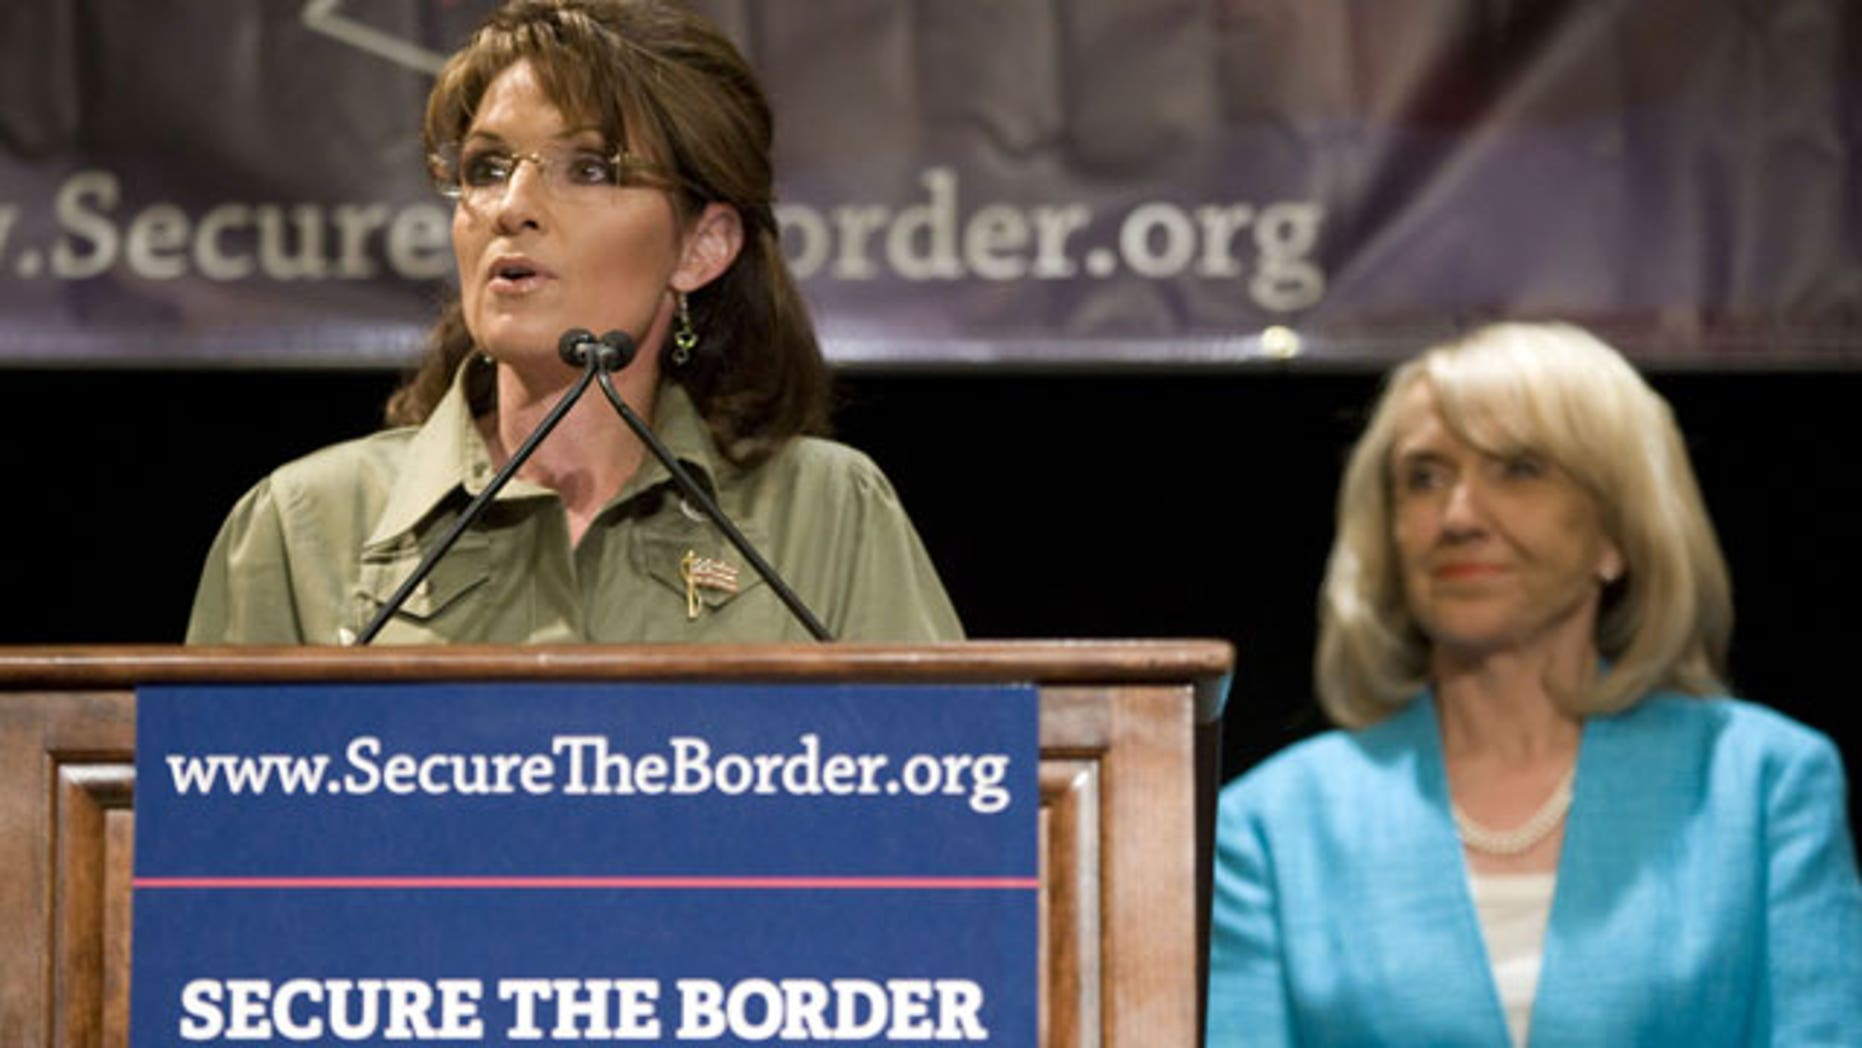 May 15: Former Alaska Governor Sarah Palin, left, speaks as Arizona Gov. Jan Brewer looks on at a news conference about border security at the JW Marriott Desert Ridge in Phoenix.